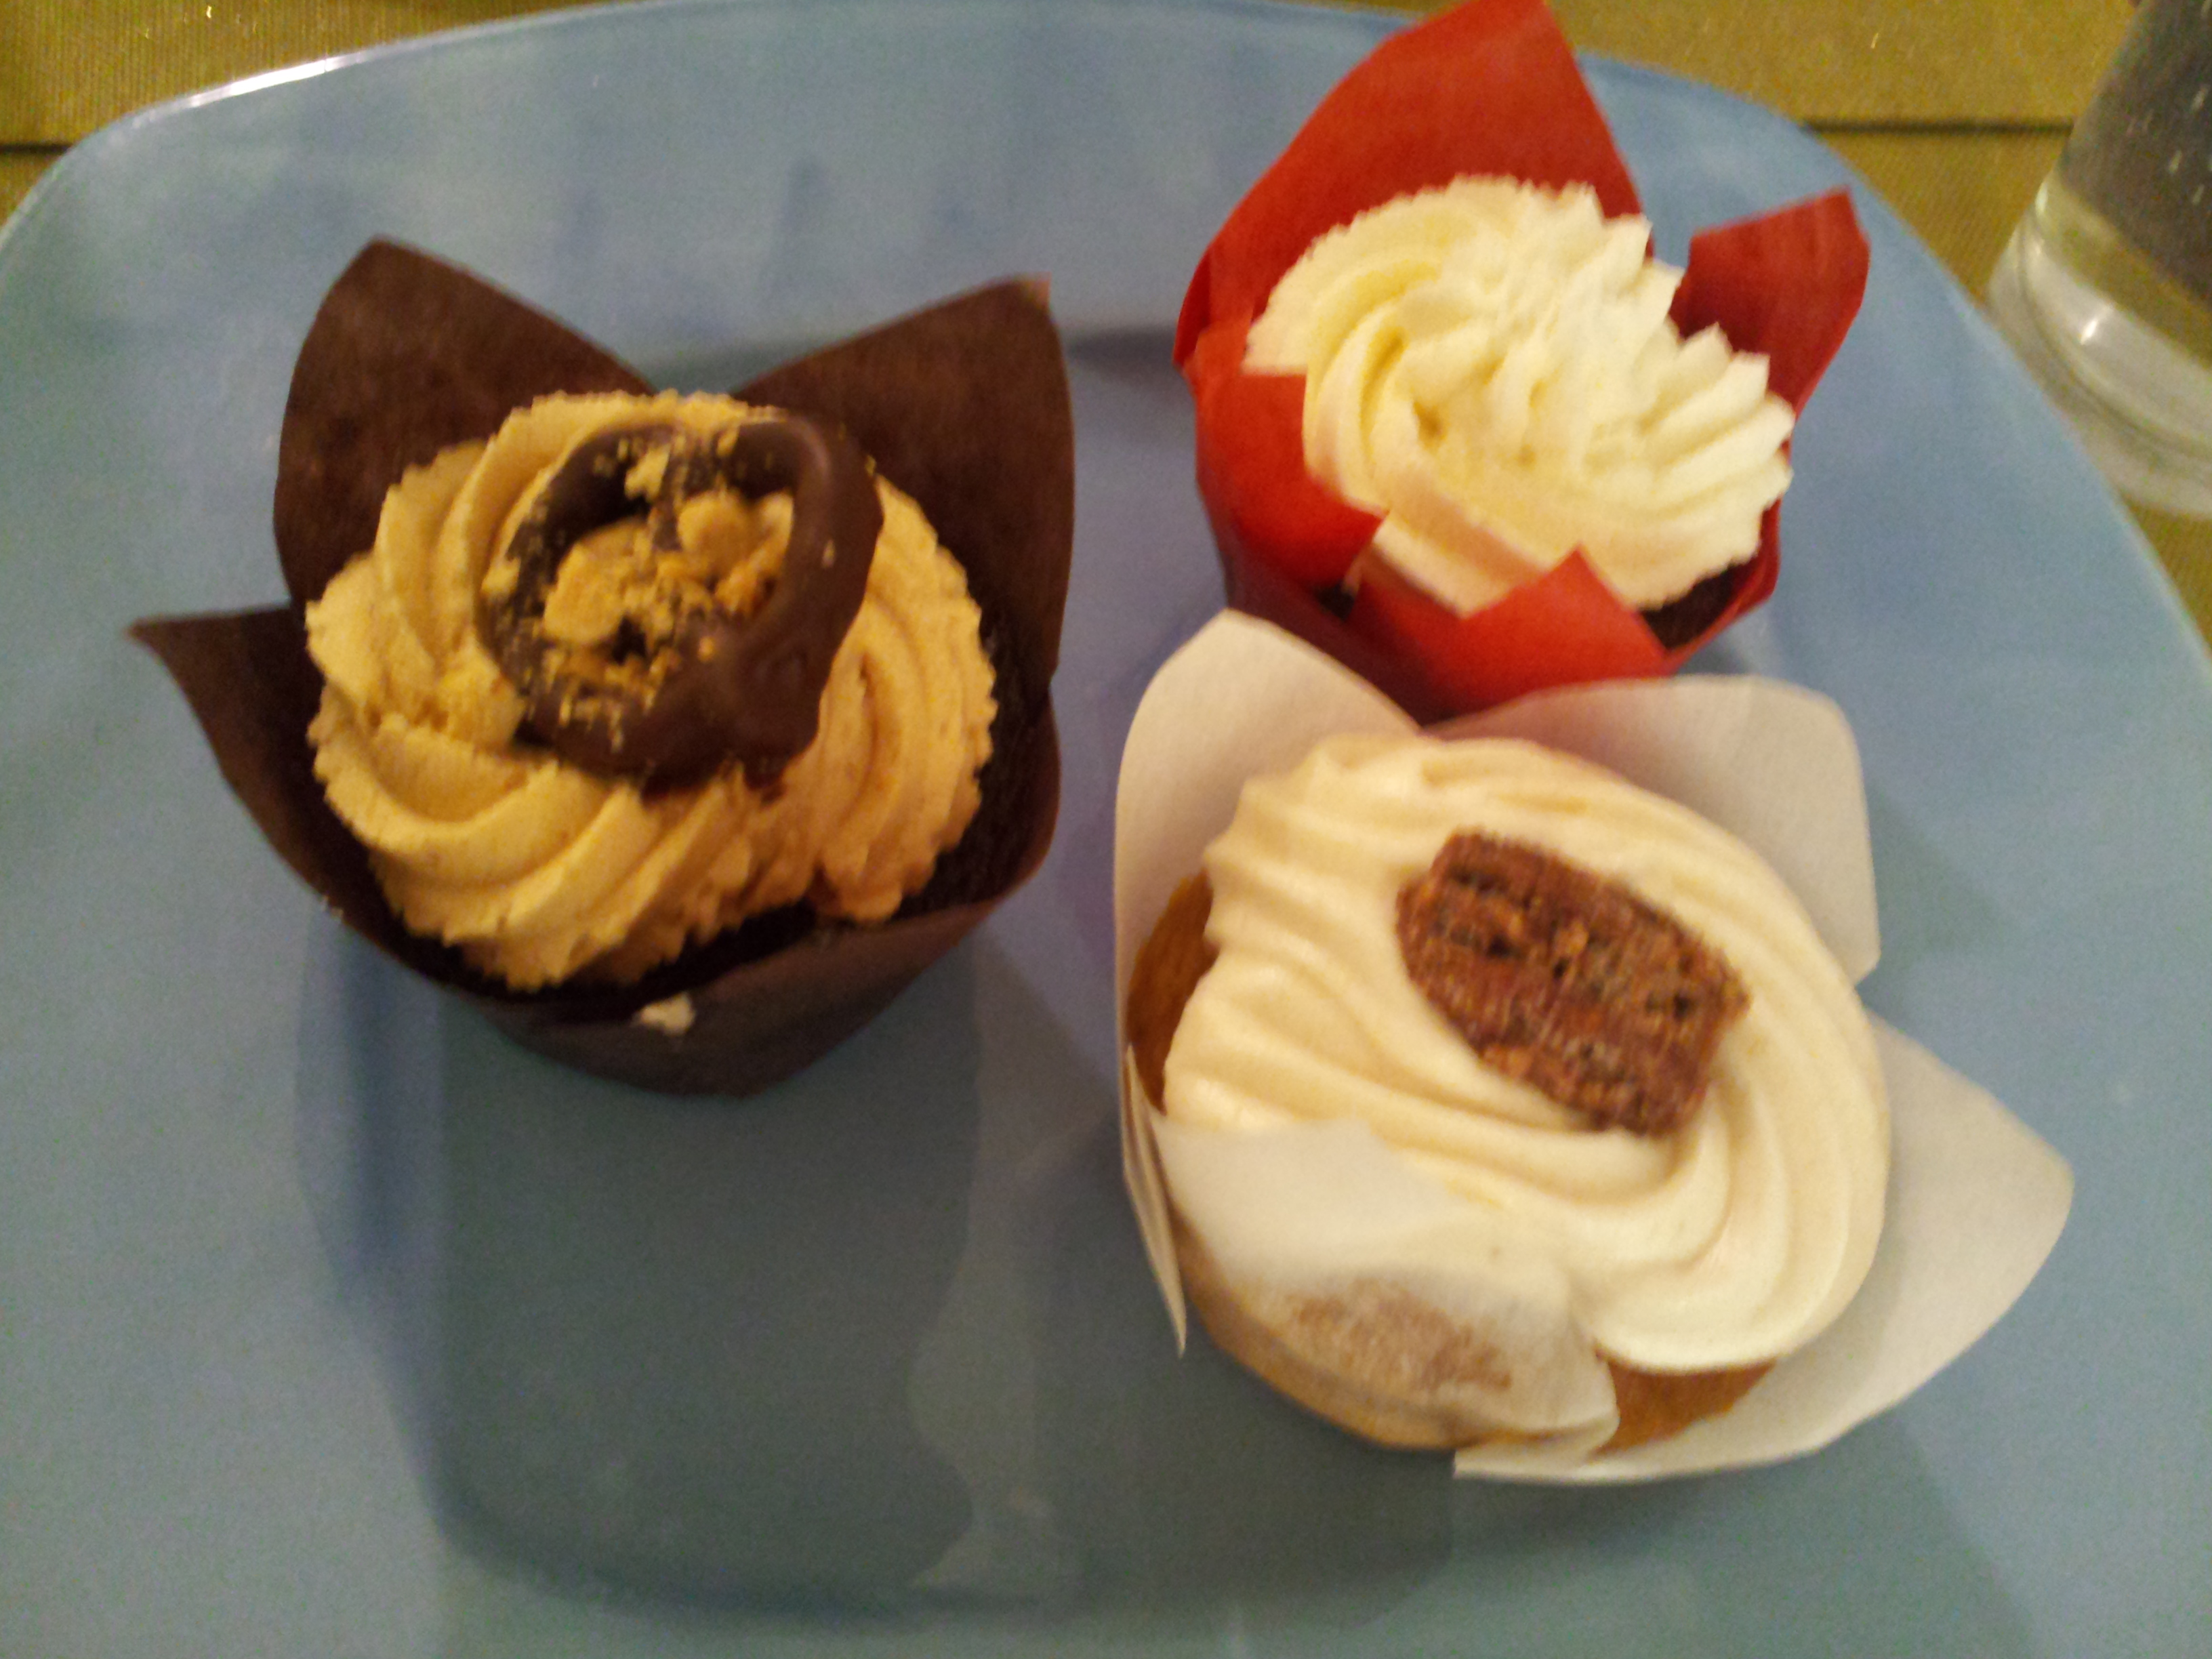 ... cupcakes with candied pecans. I left the red wine cupcakes to simply